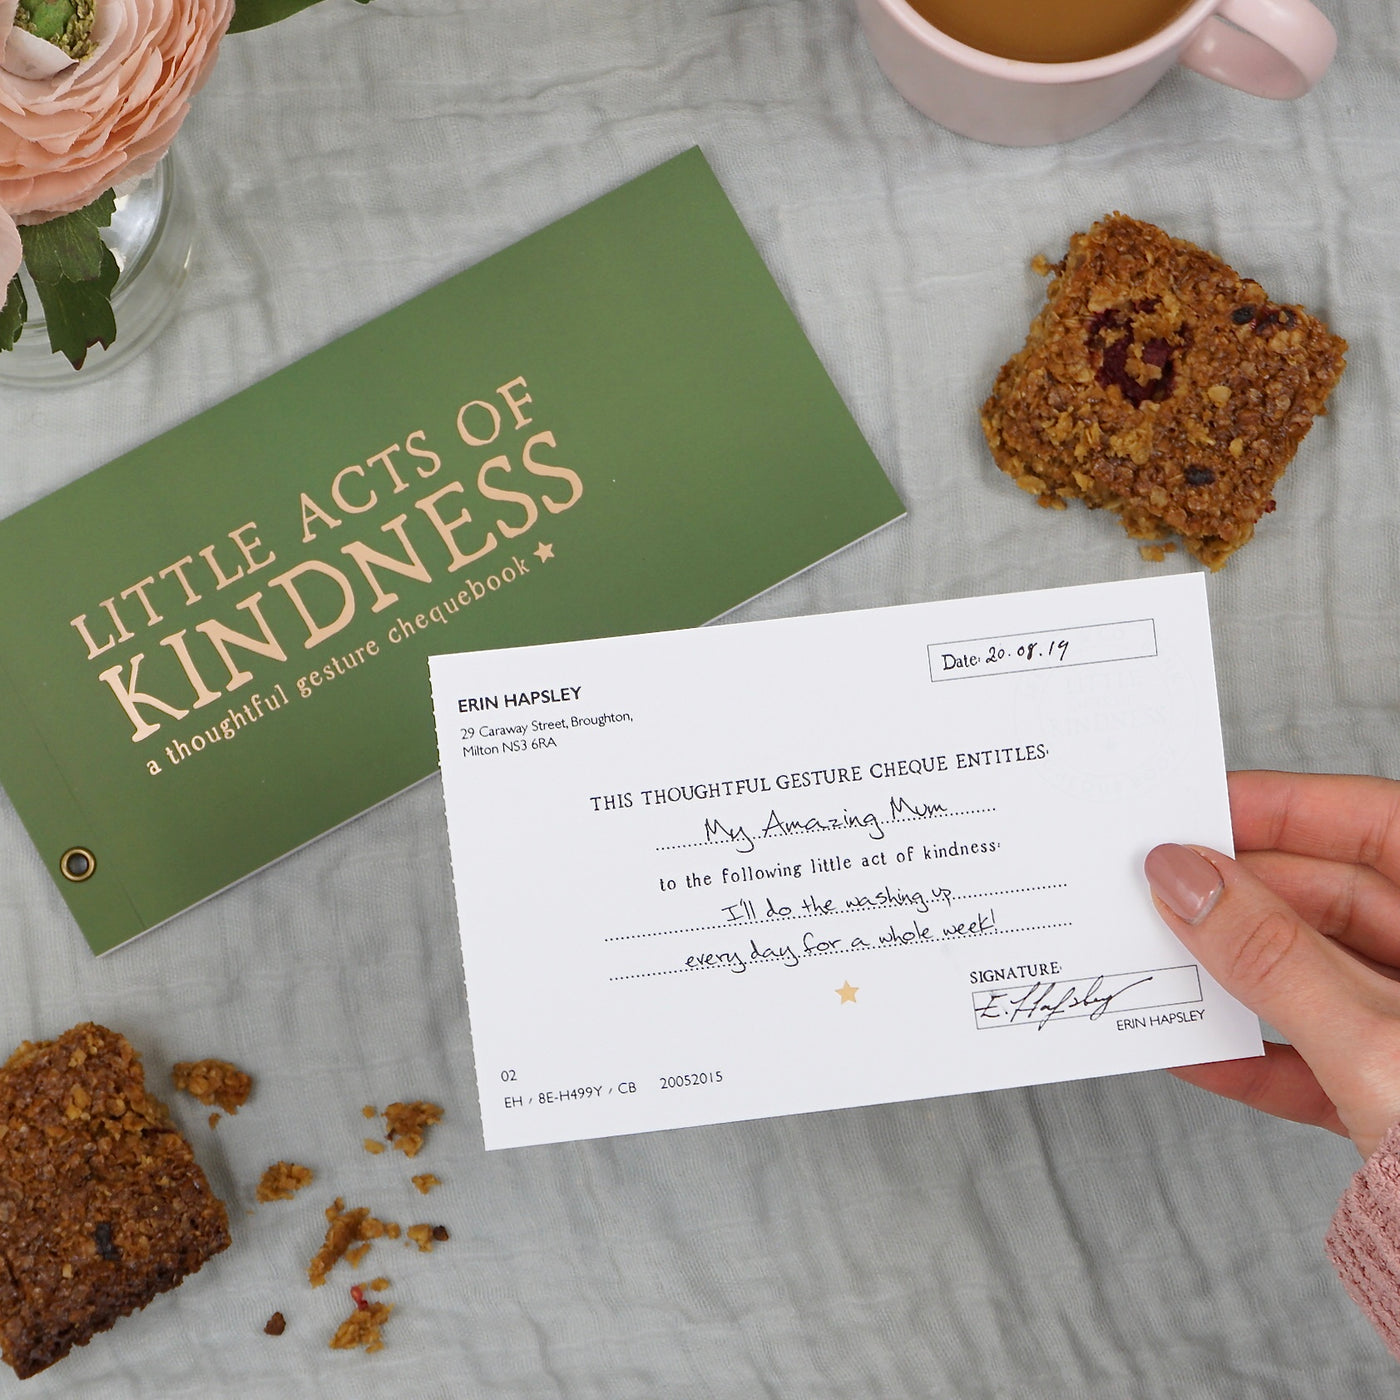 Little Acts of Kindness: A Thoughtful Gesture Chequebook